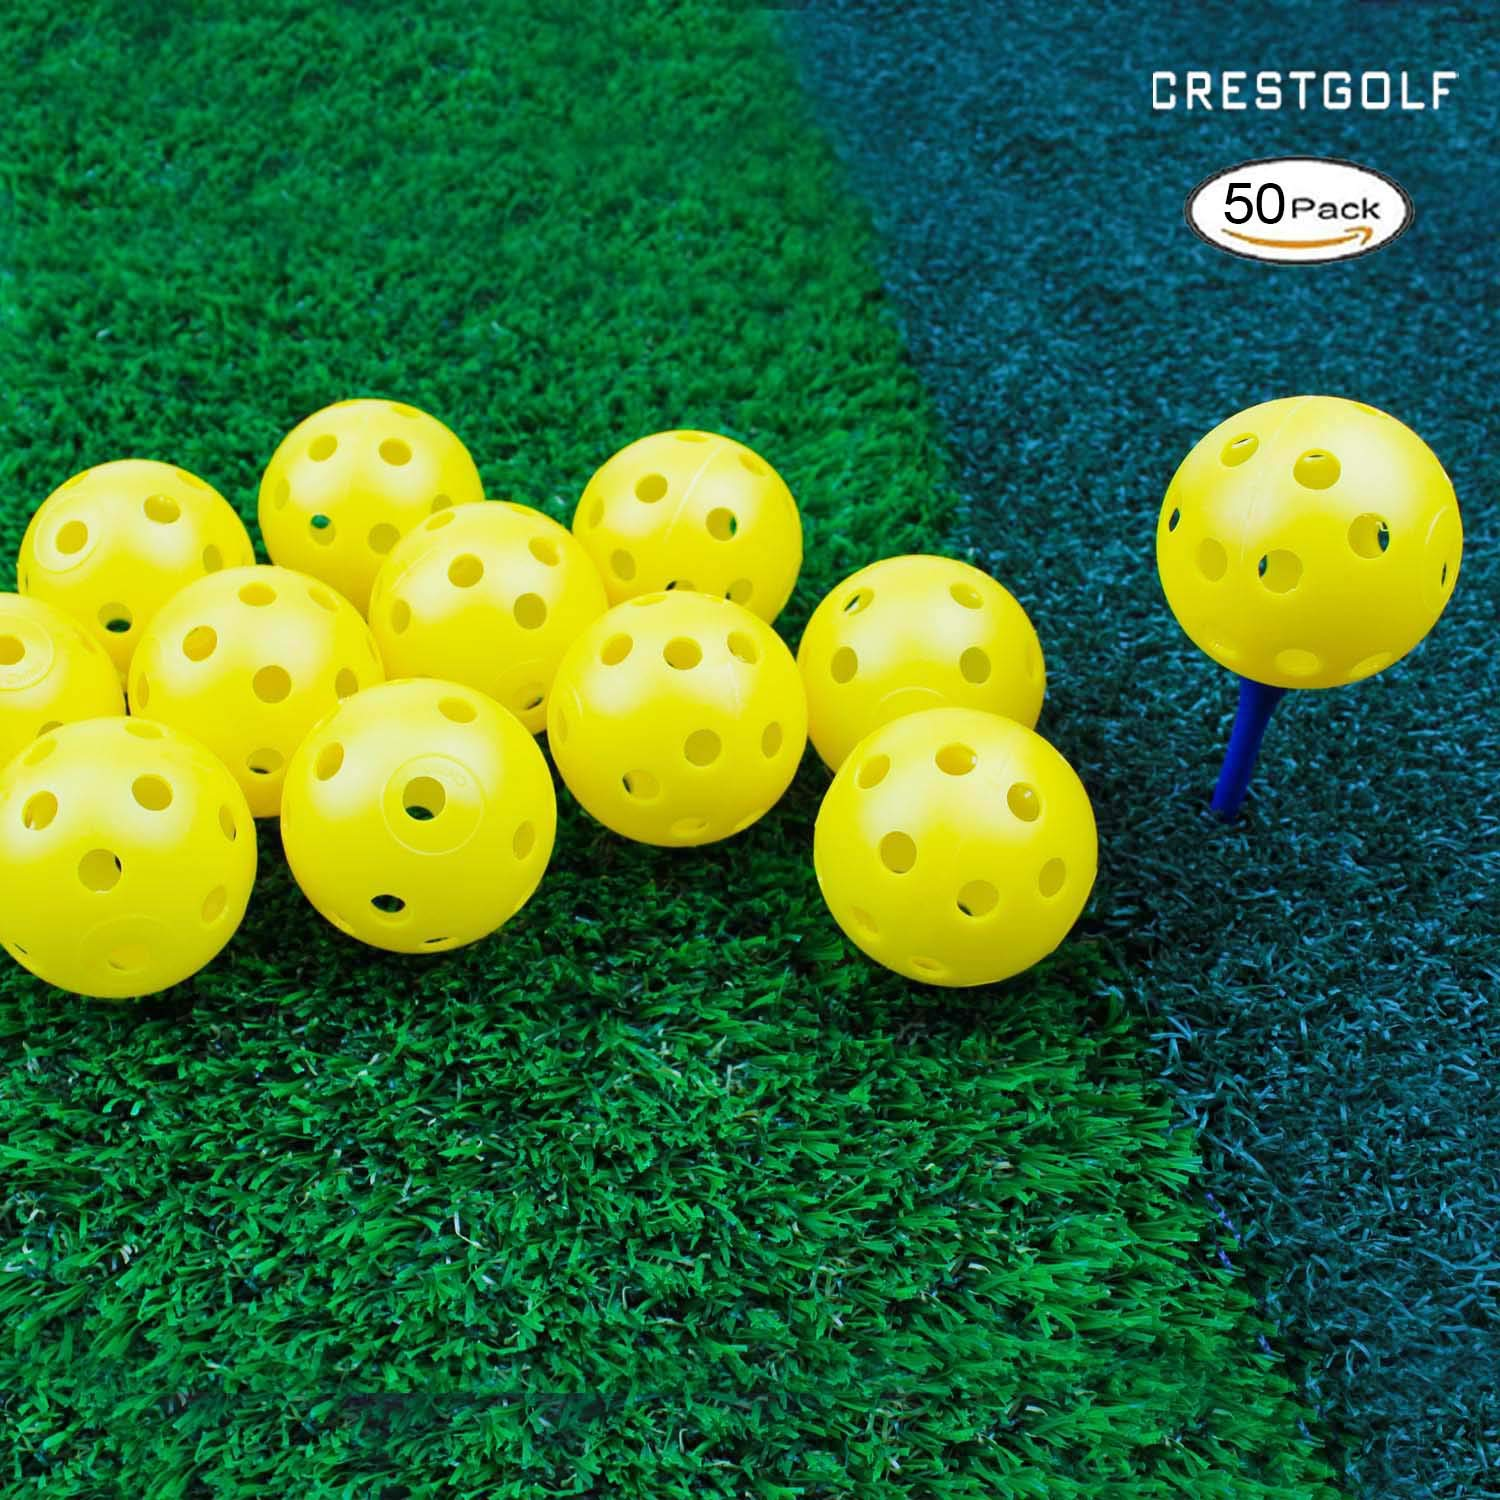 Crestgolf 12/50 Pack Plastic Golf Training Balls - Airflow Hollow 40mm Golf Balls for Driving Range, Swing Practice, Home Use,Pet Play.(Yellow,50pack) by Crestgolf